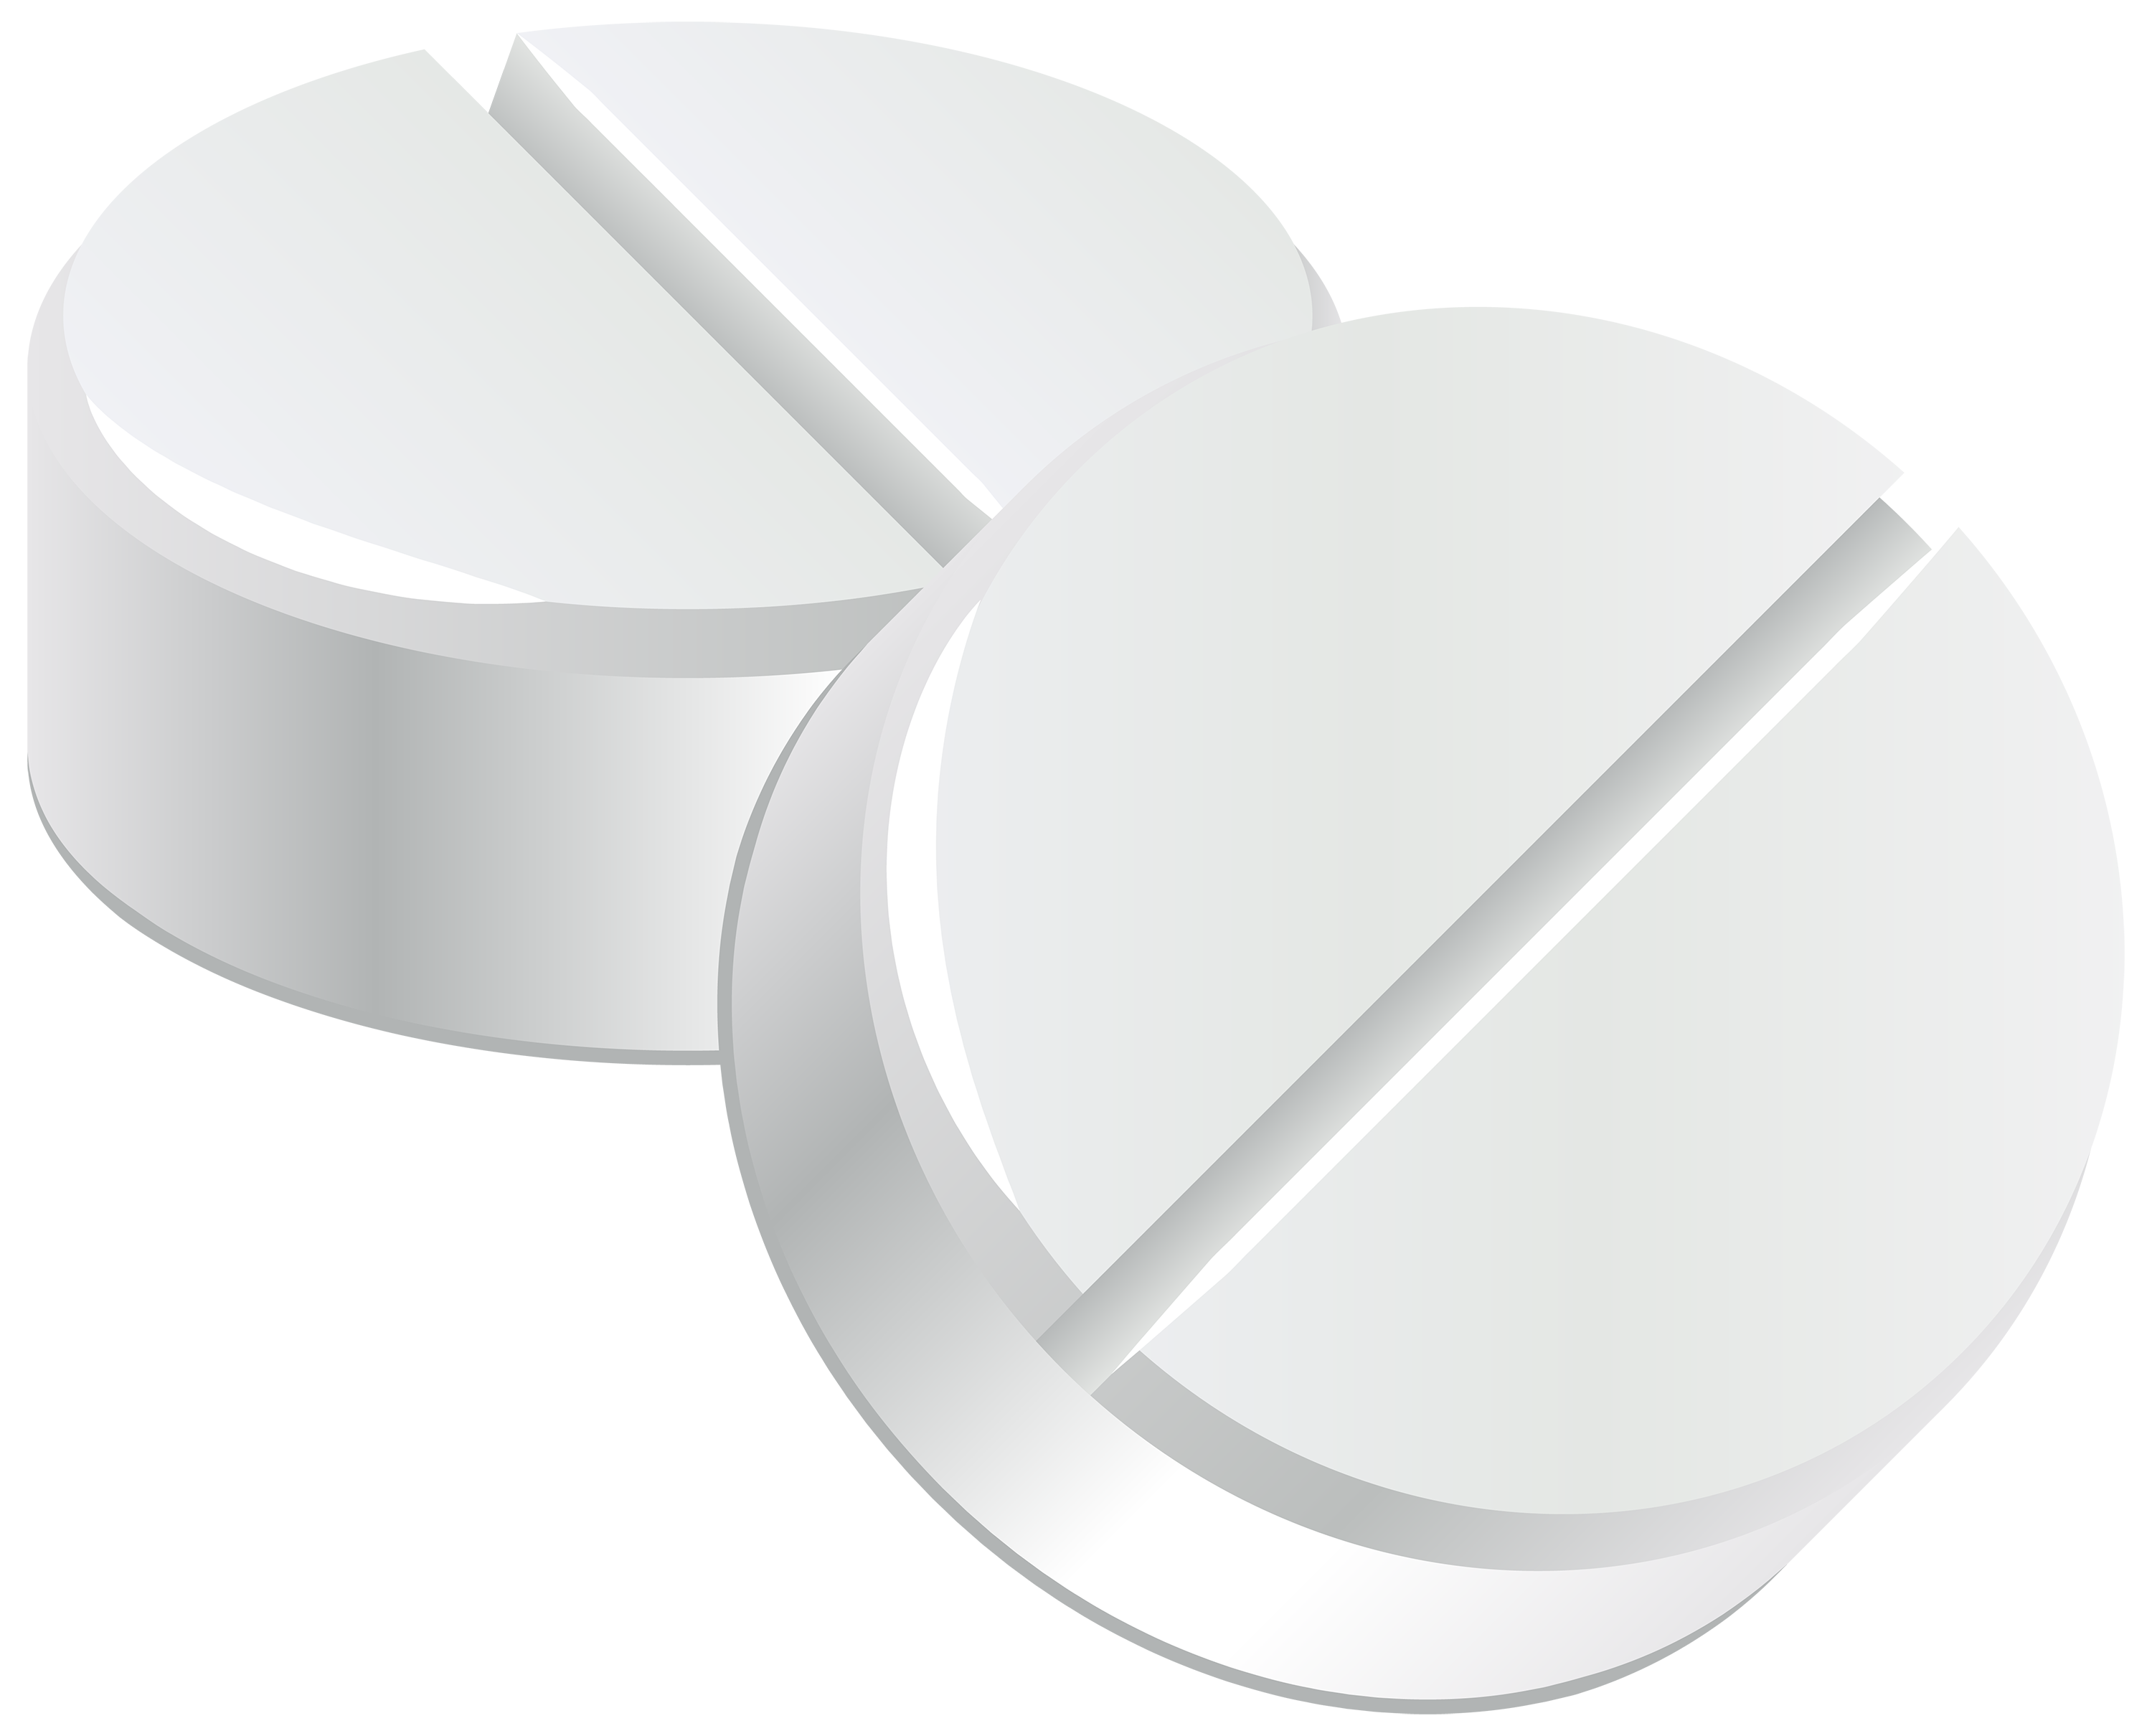 Pills clipart pink pill. Pharmaceutical drug illegal trade